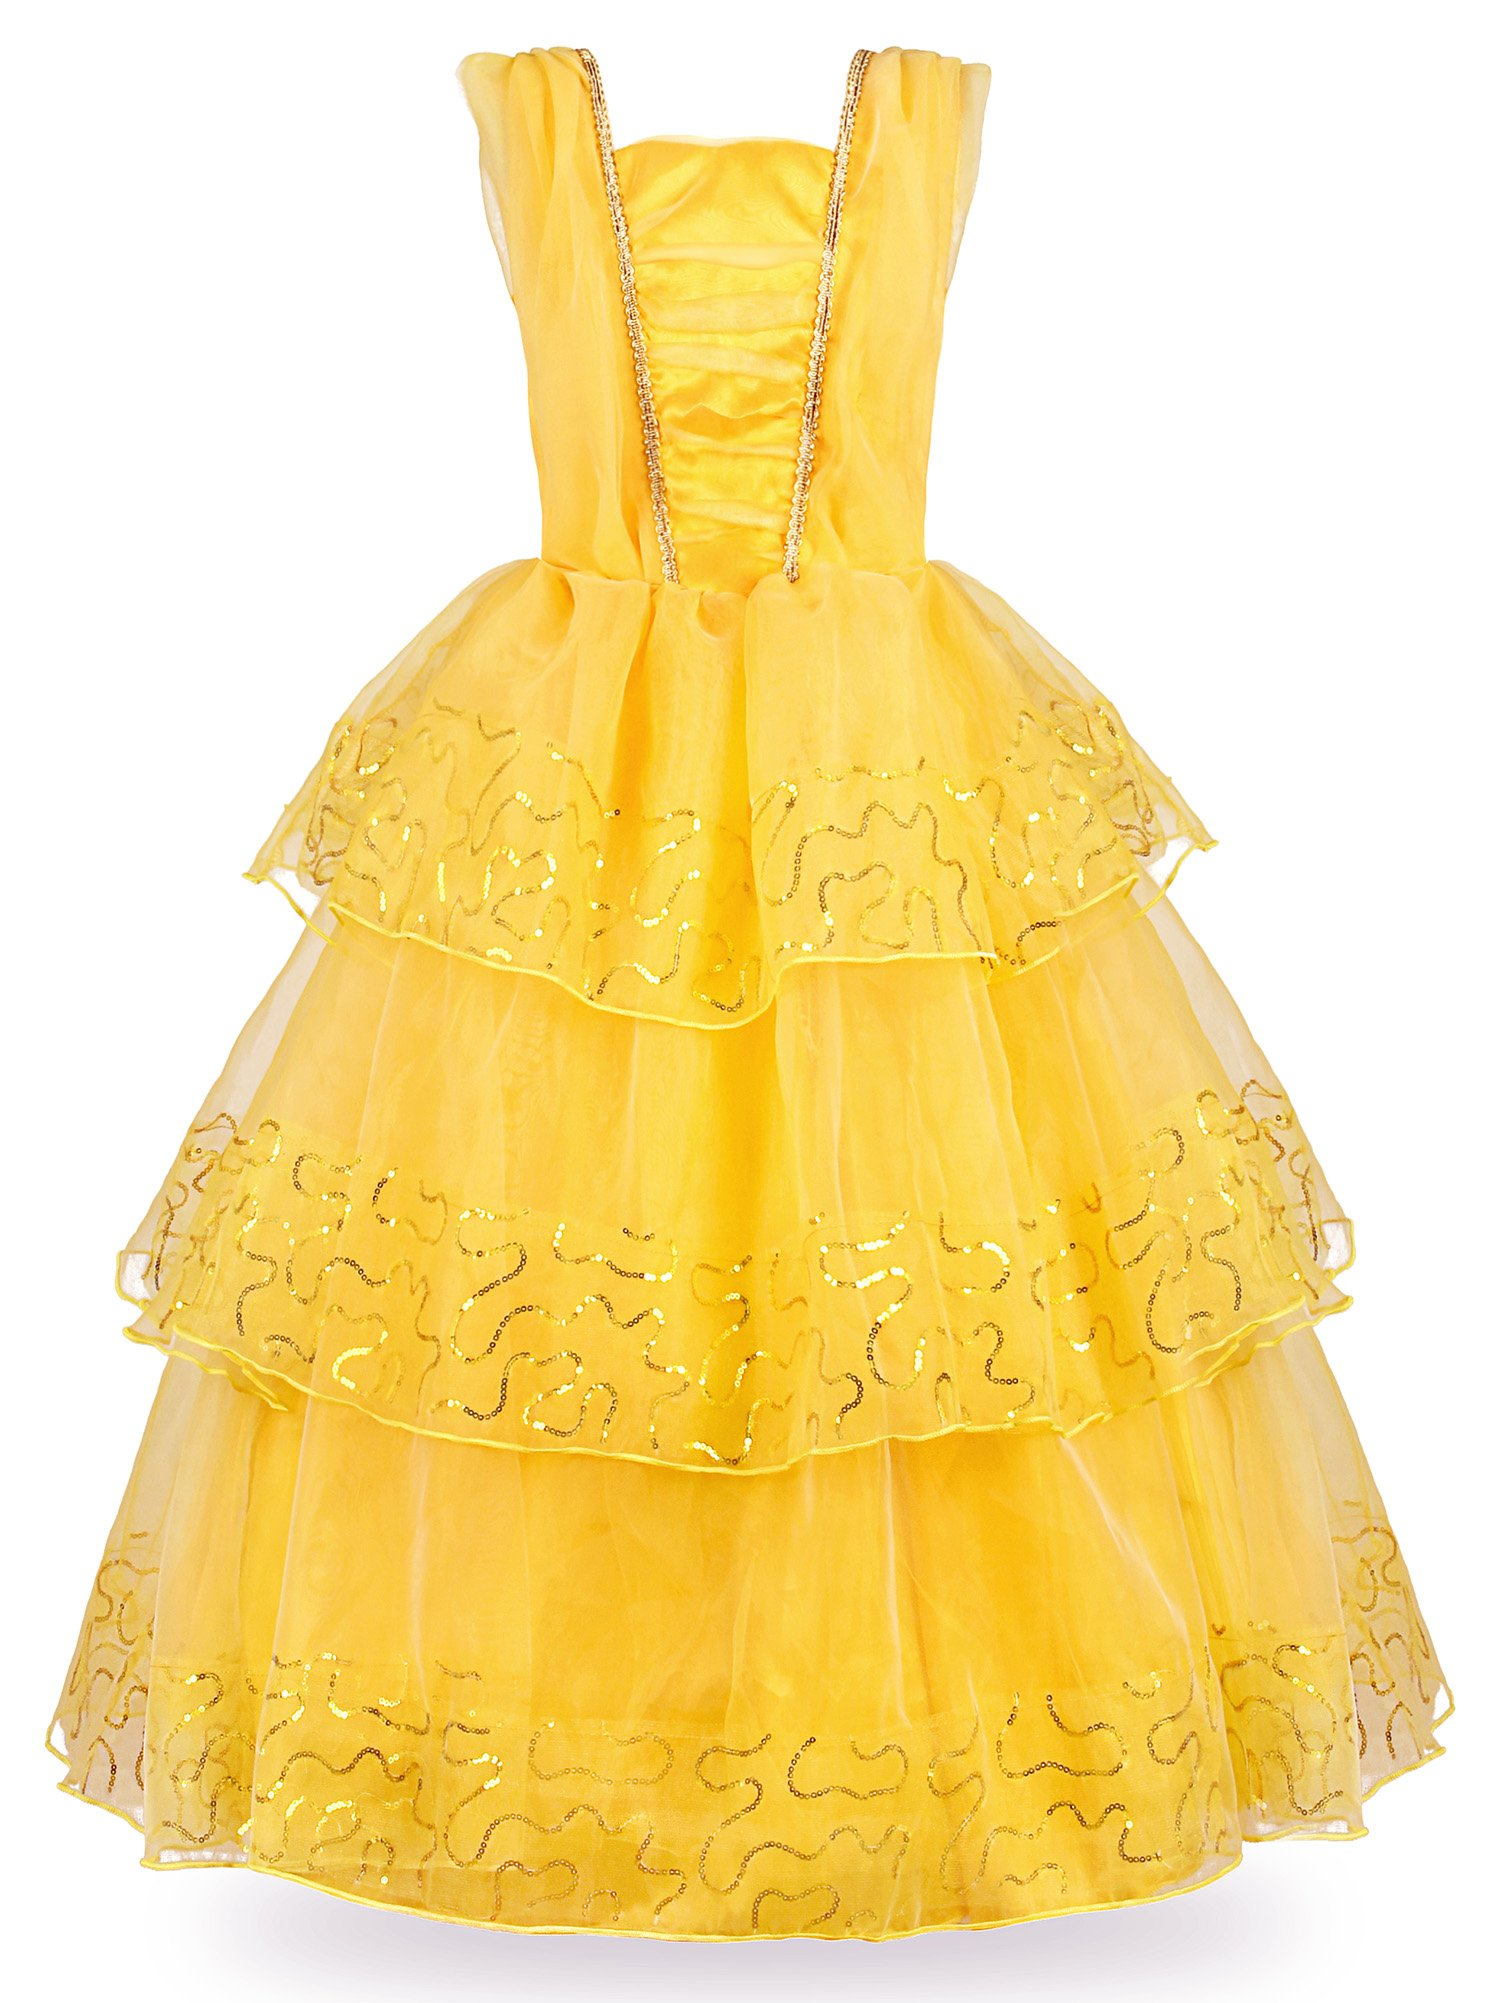 JerrisApparel Princess Belle Deluxe Ball Gown Costume for Little Girl(3T, Yellow)